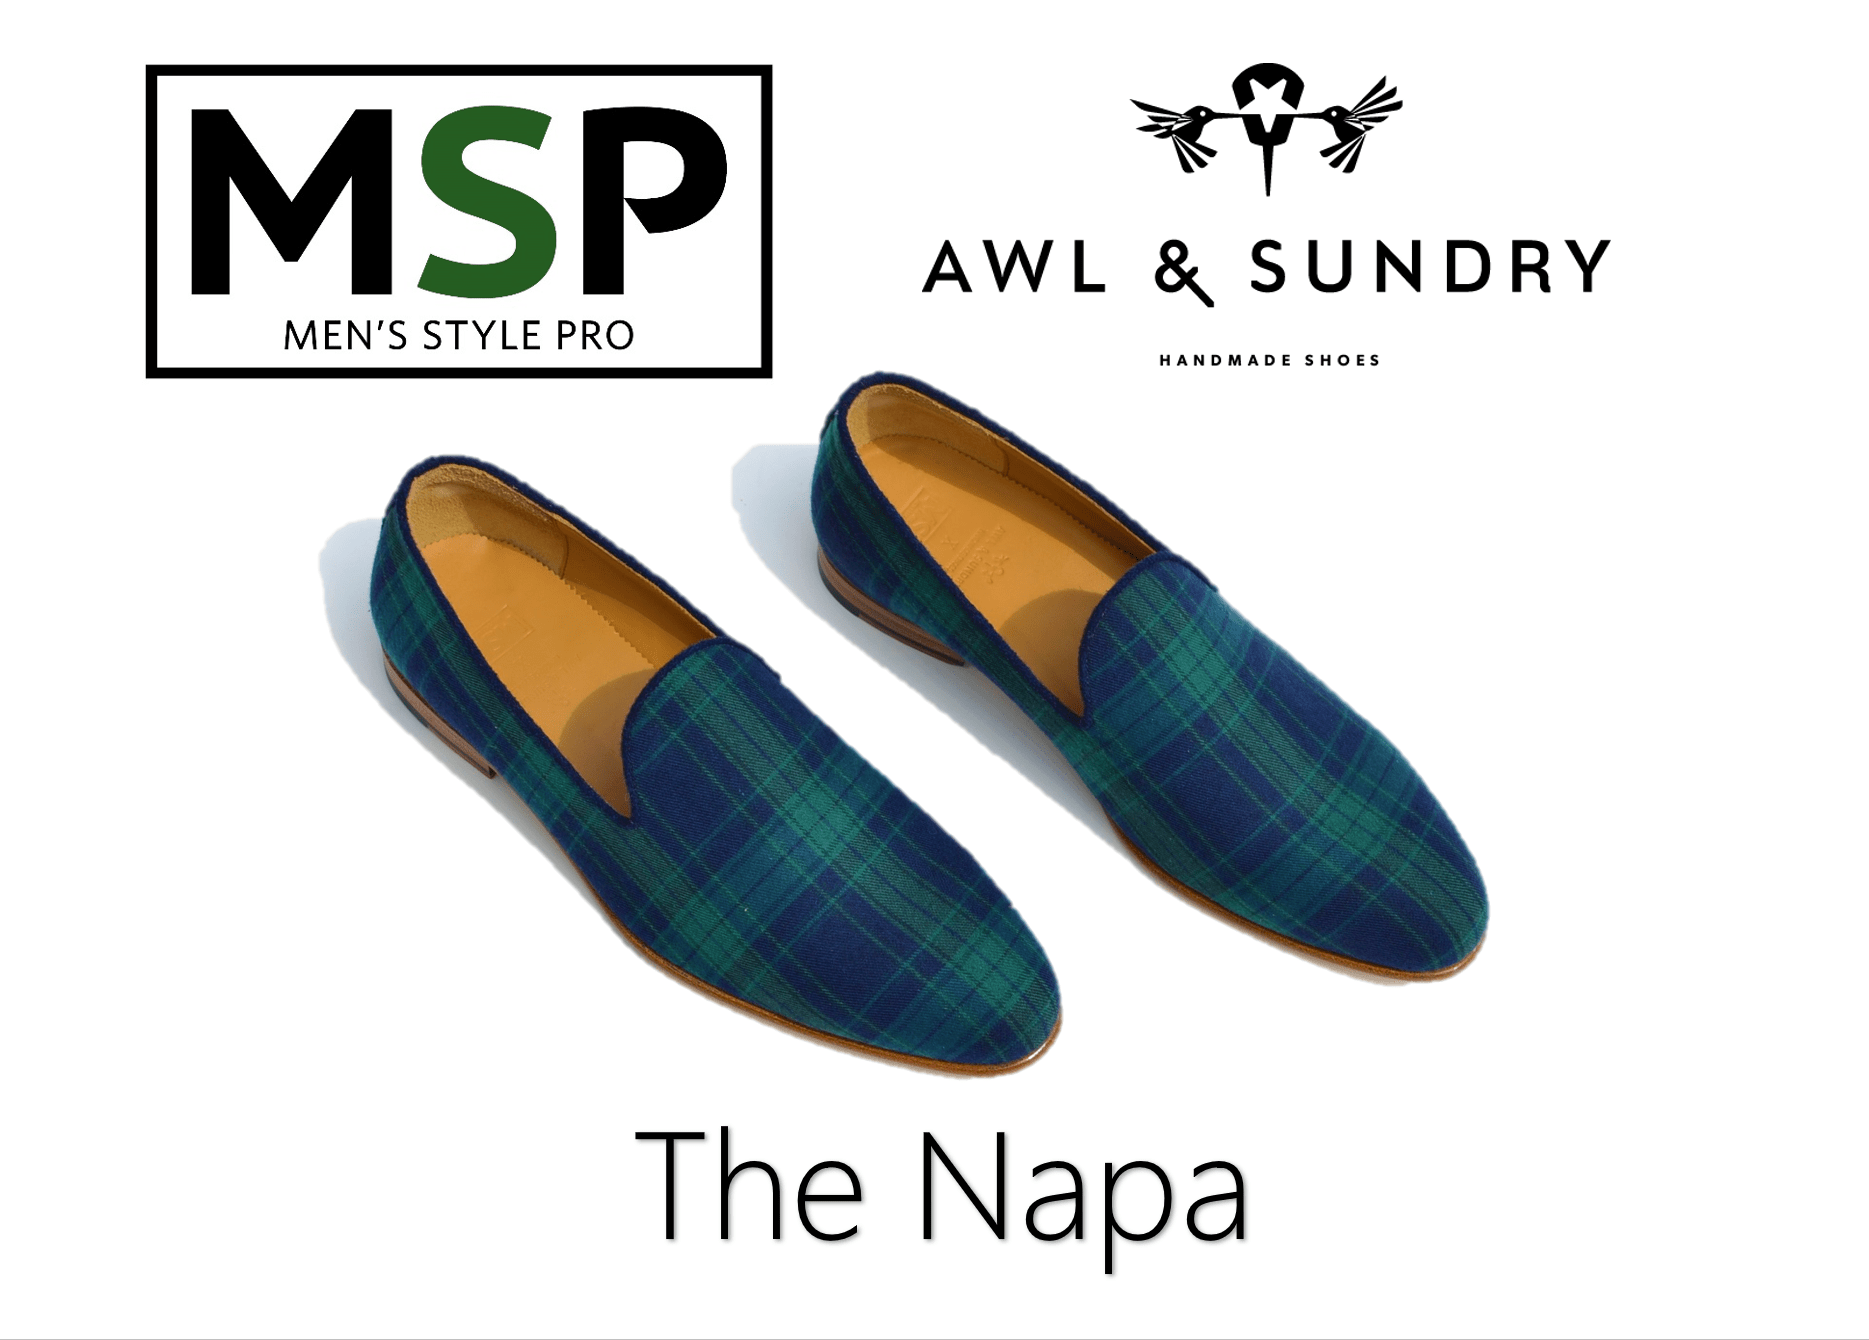 MSP x AS The Napa Slipper Aerial